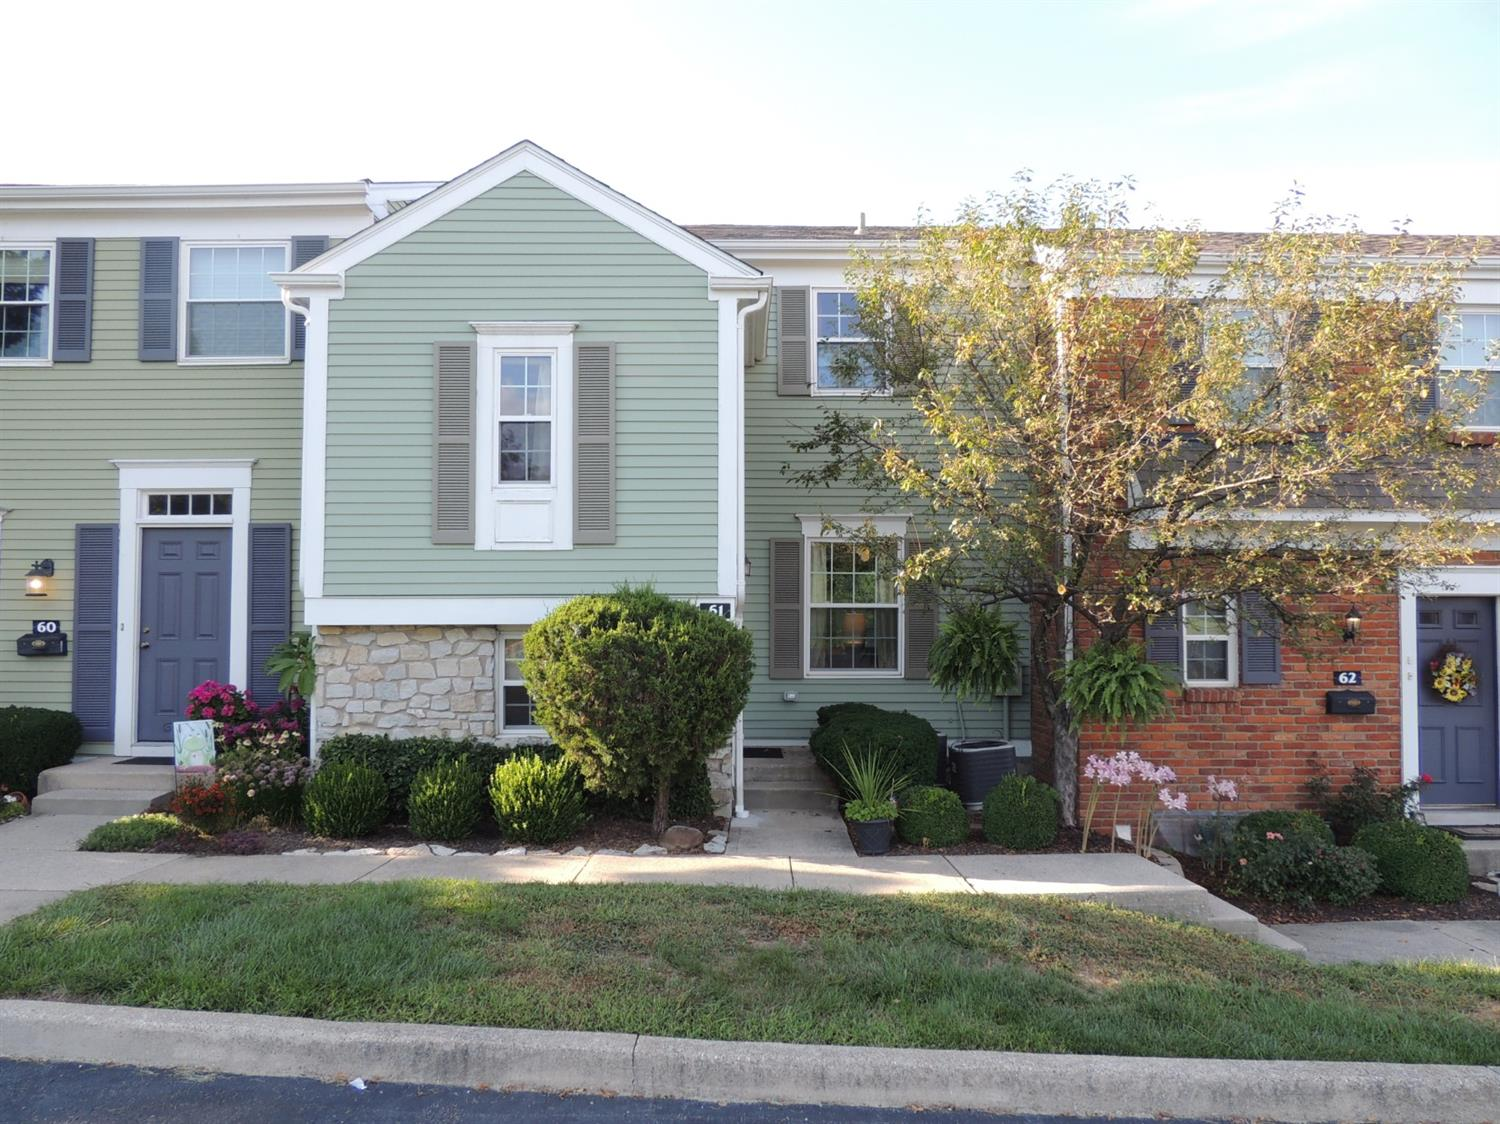 Property for sale at 61 Applewood Drive Unit: 61, Fairfield,  Ohio 45014